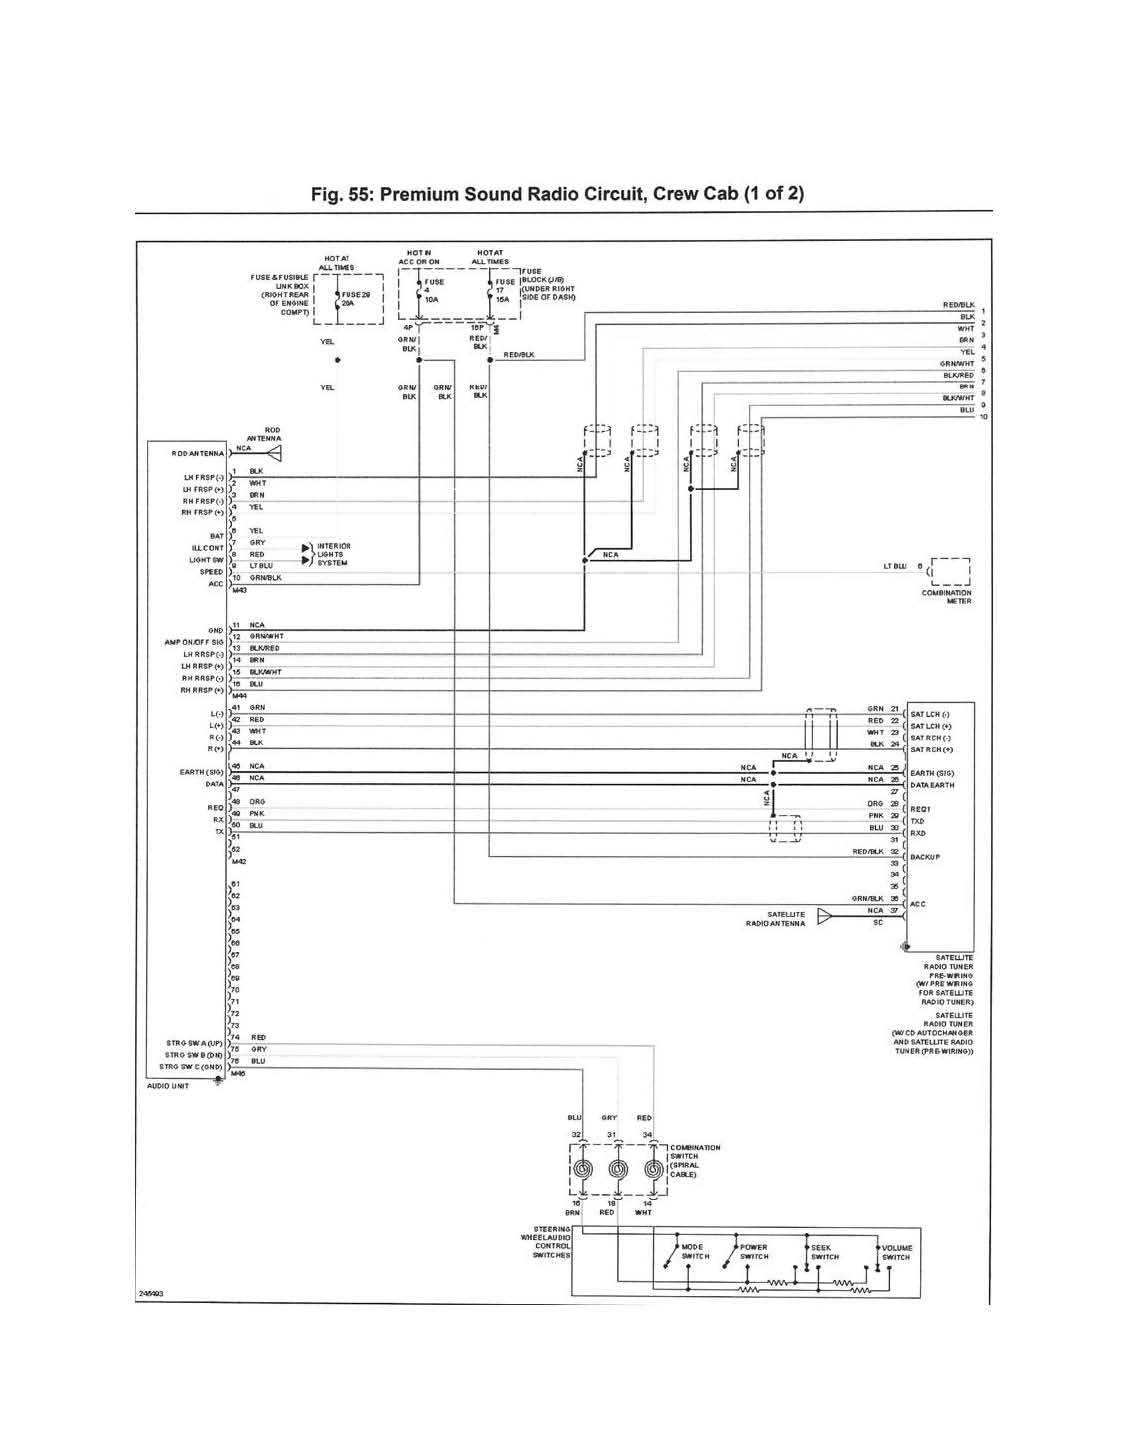 2012 nissan frontier wiring diagram wire center \u2022 2003 nissan frontier fuel diagram 2012 nissan frontier wiring diagram images gallery